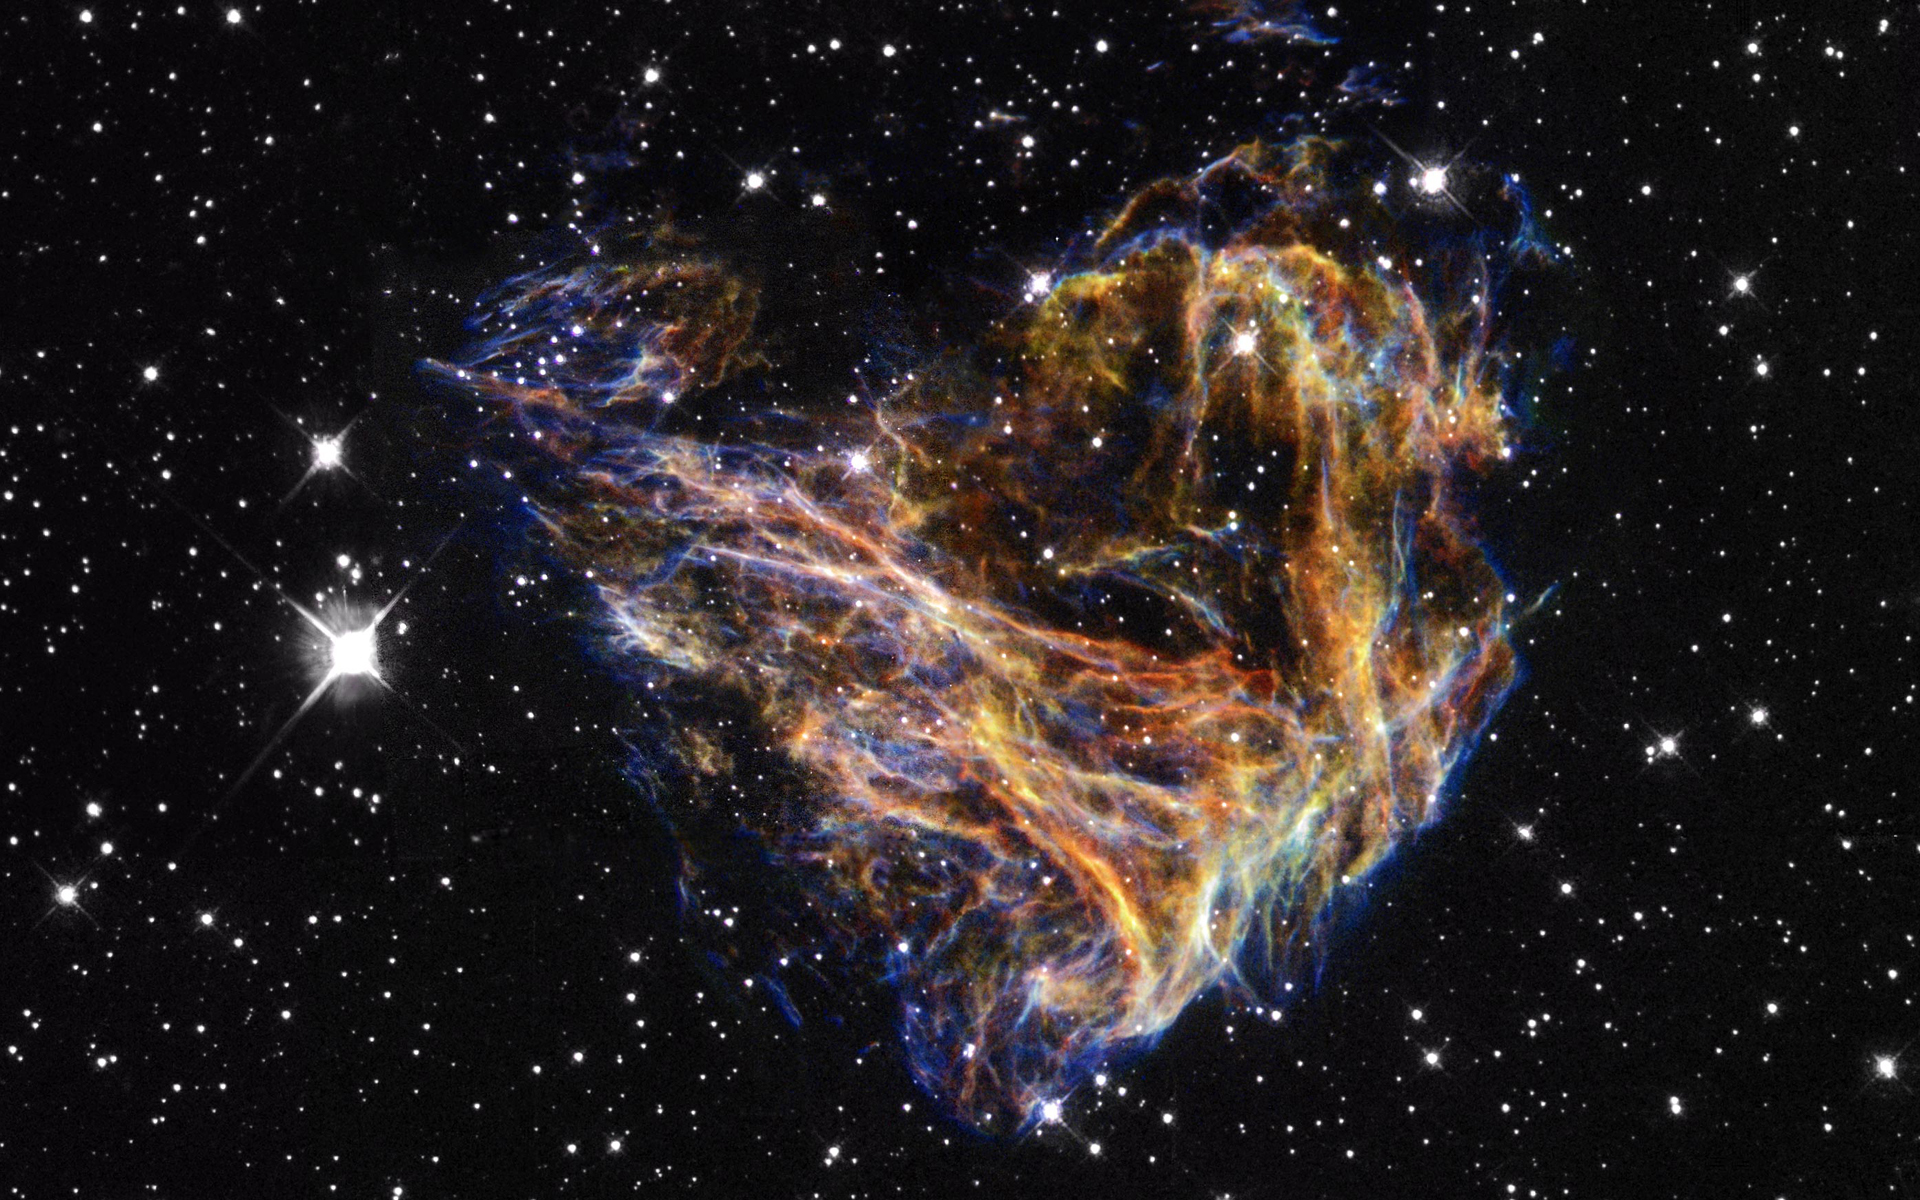 hd wallpapers 1080p hubble space - photo #36